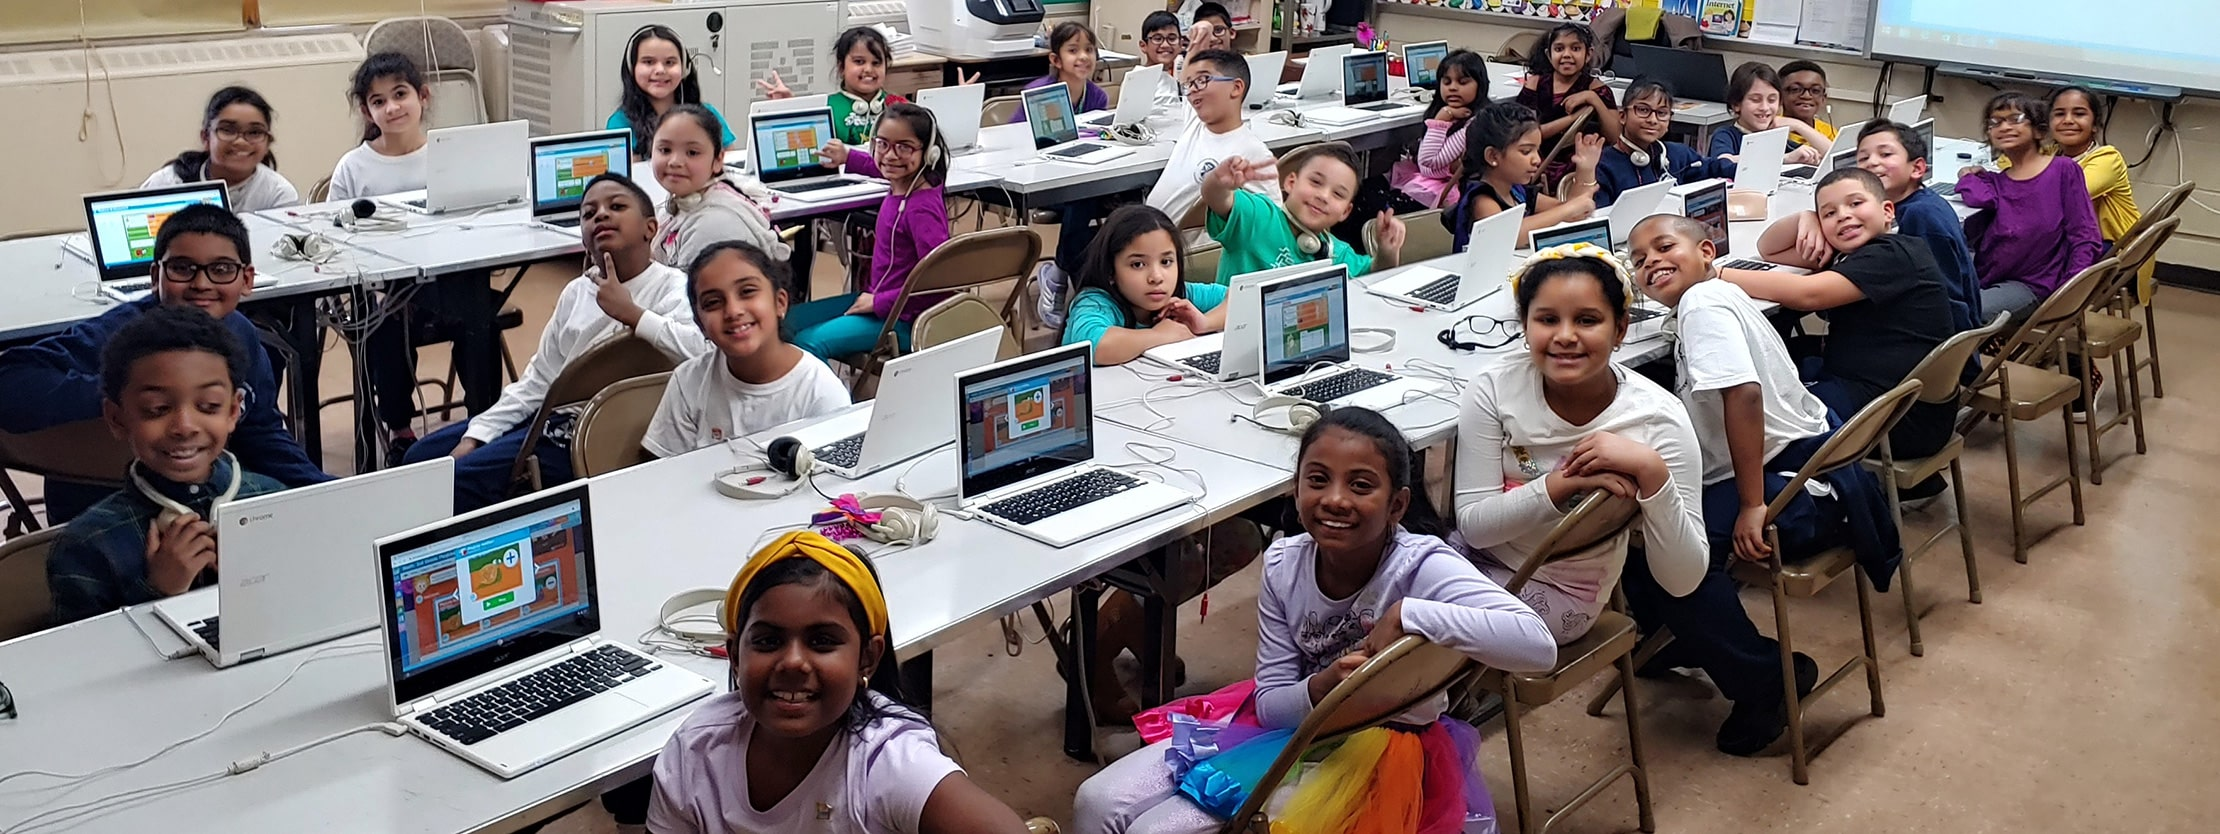 students smile for camera during open computer lab session